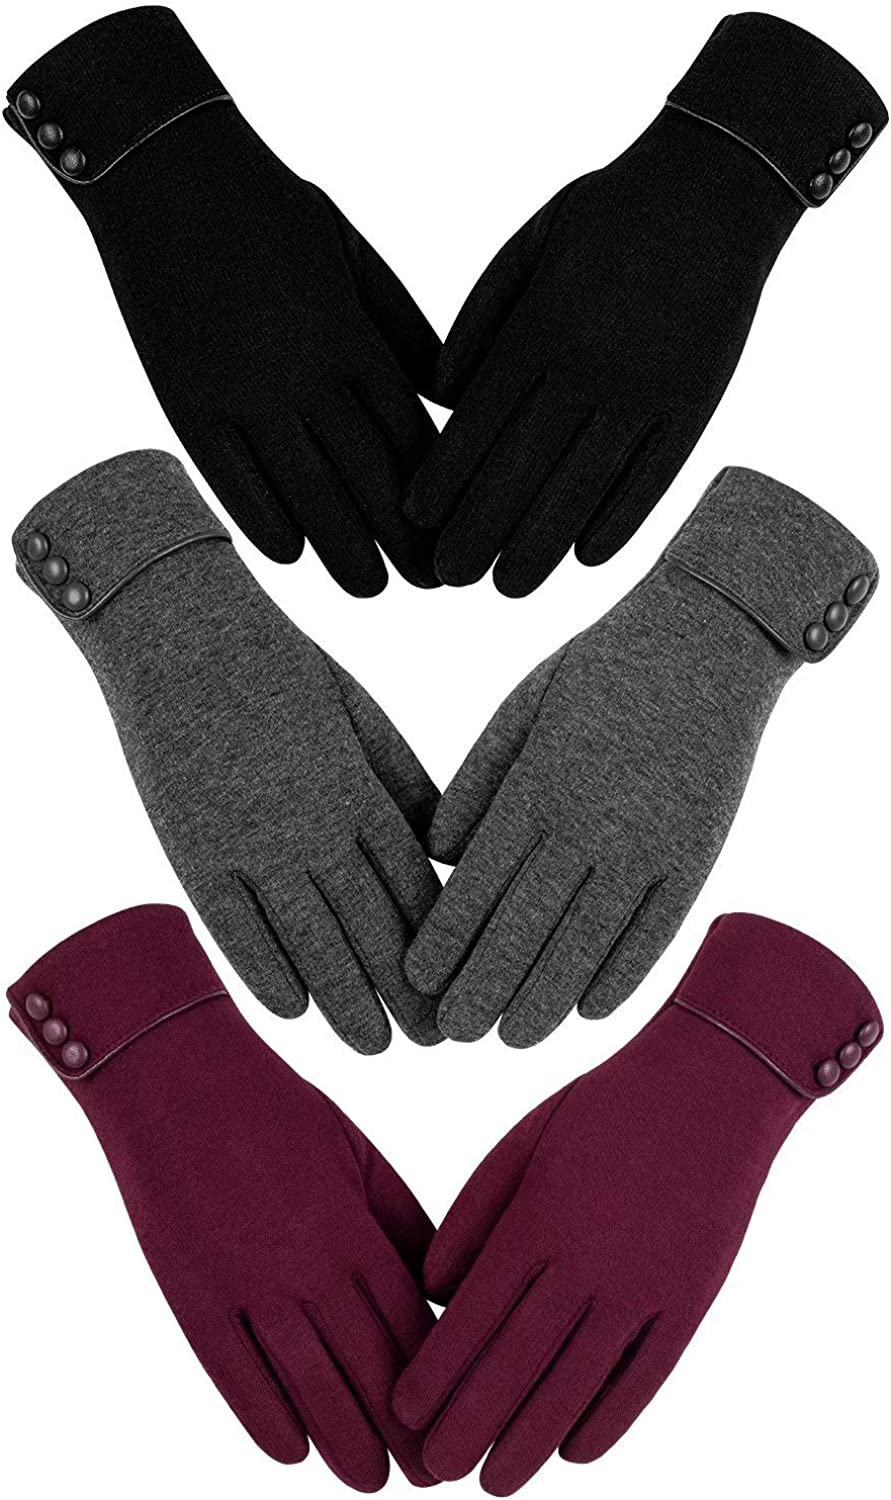 Womens Winter Warm Gloves, Touchscreen Texting Fleece Lined Windproof Driving Gloves Hand Warmer By Alepo (Black&Gray&Burgundy-M)